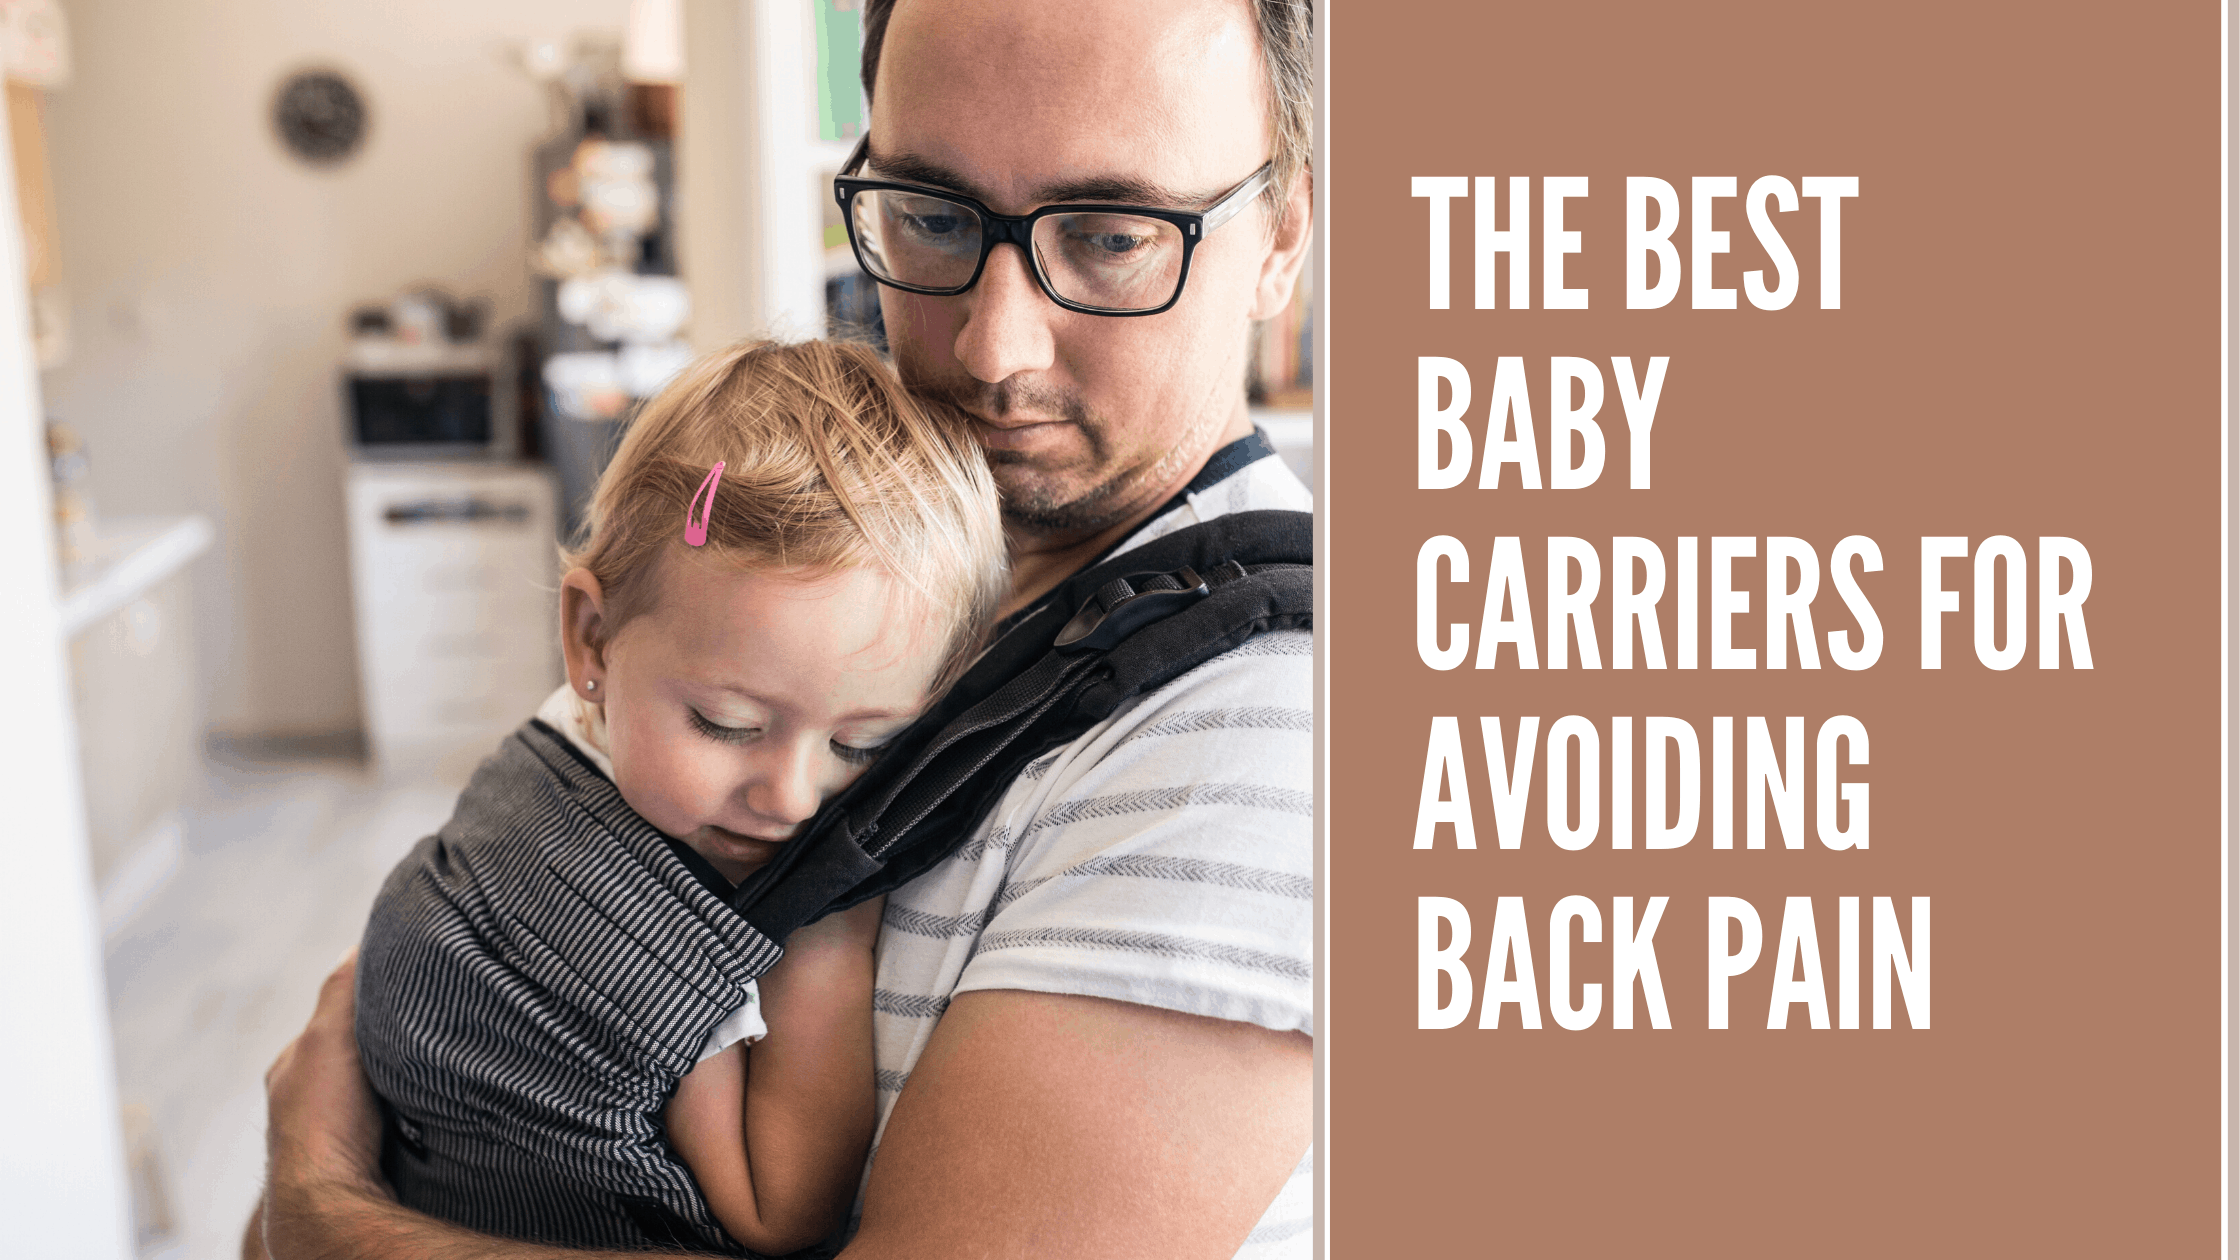 The best baby carriers for back pain